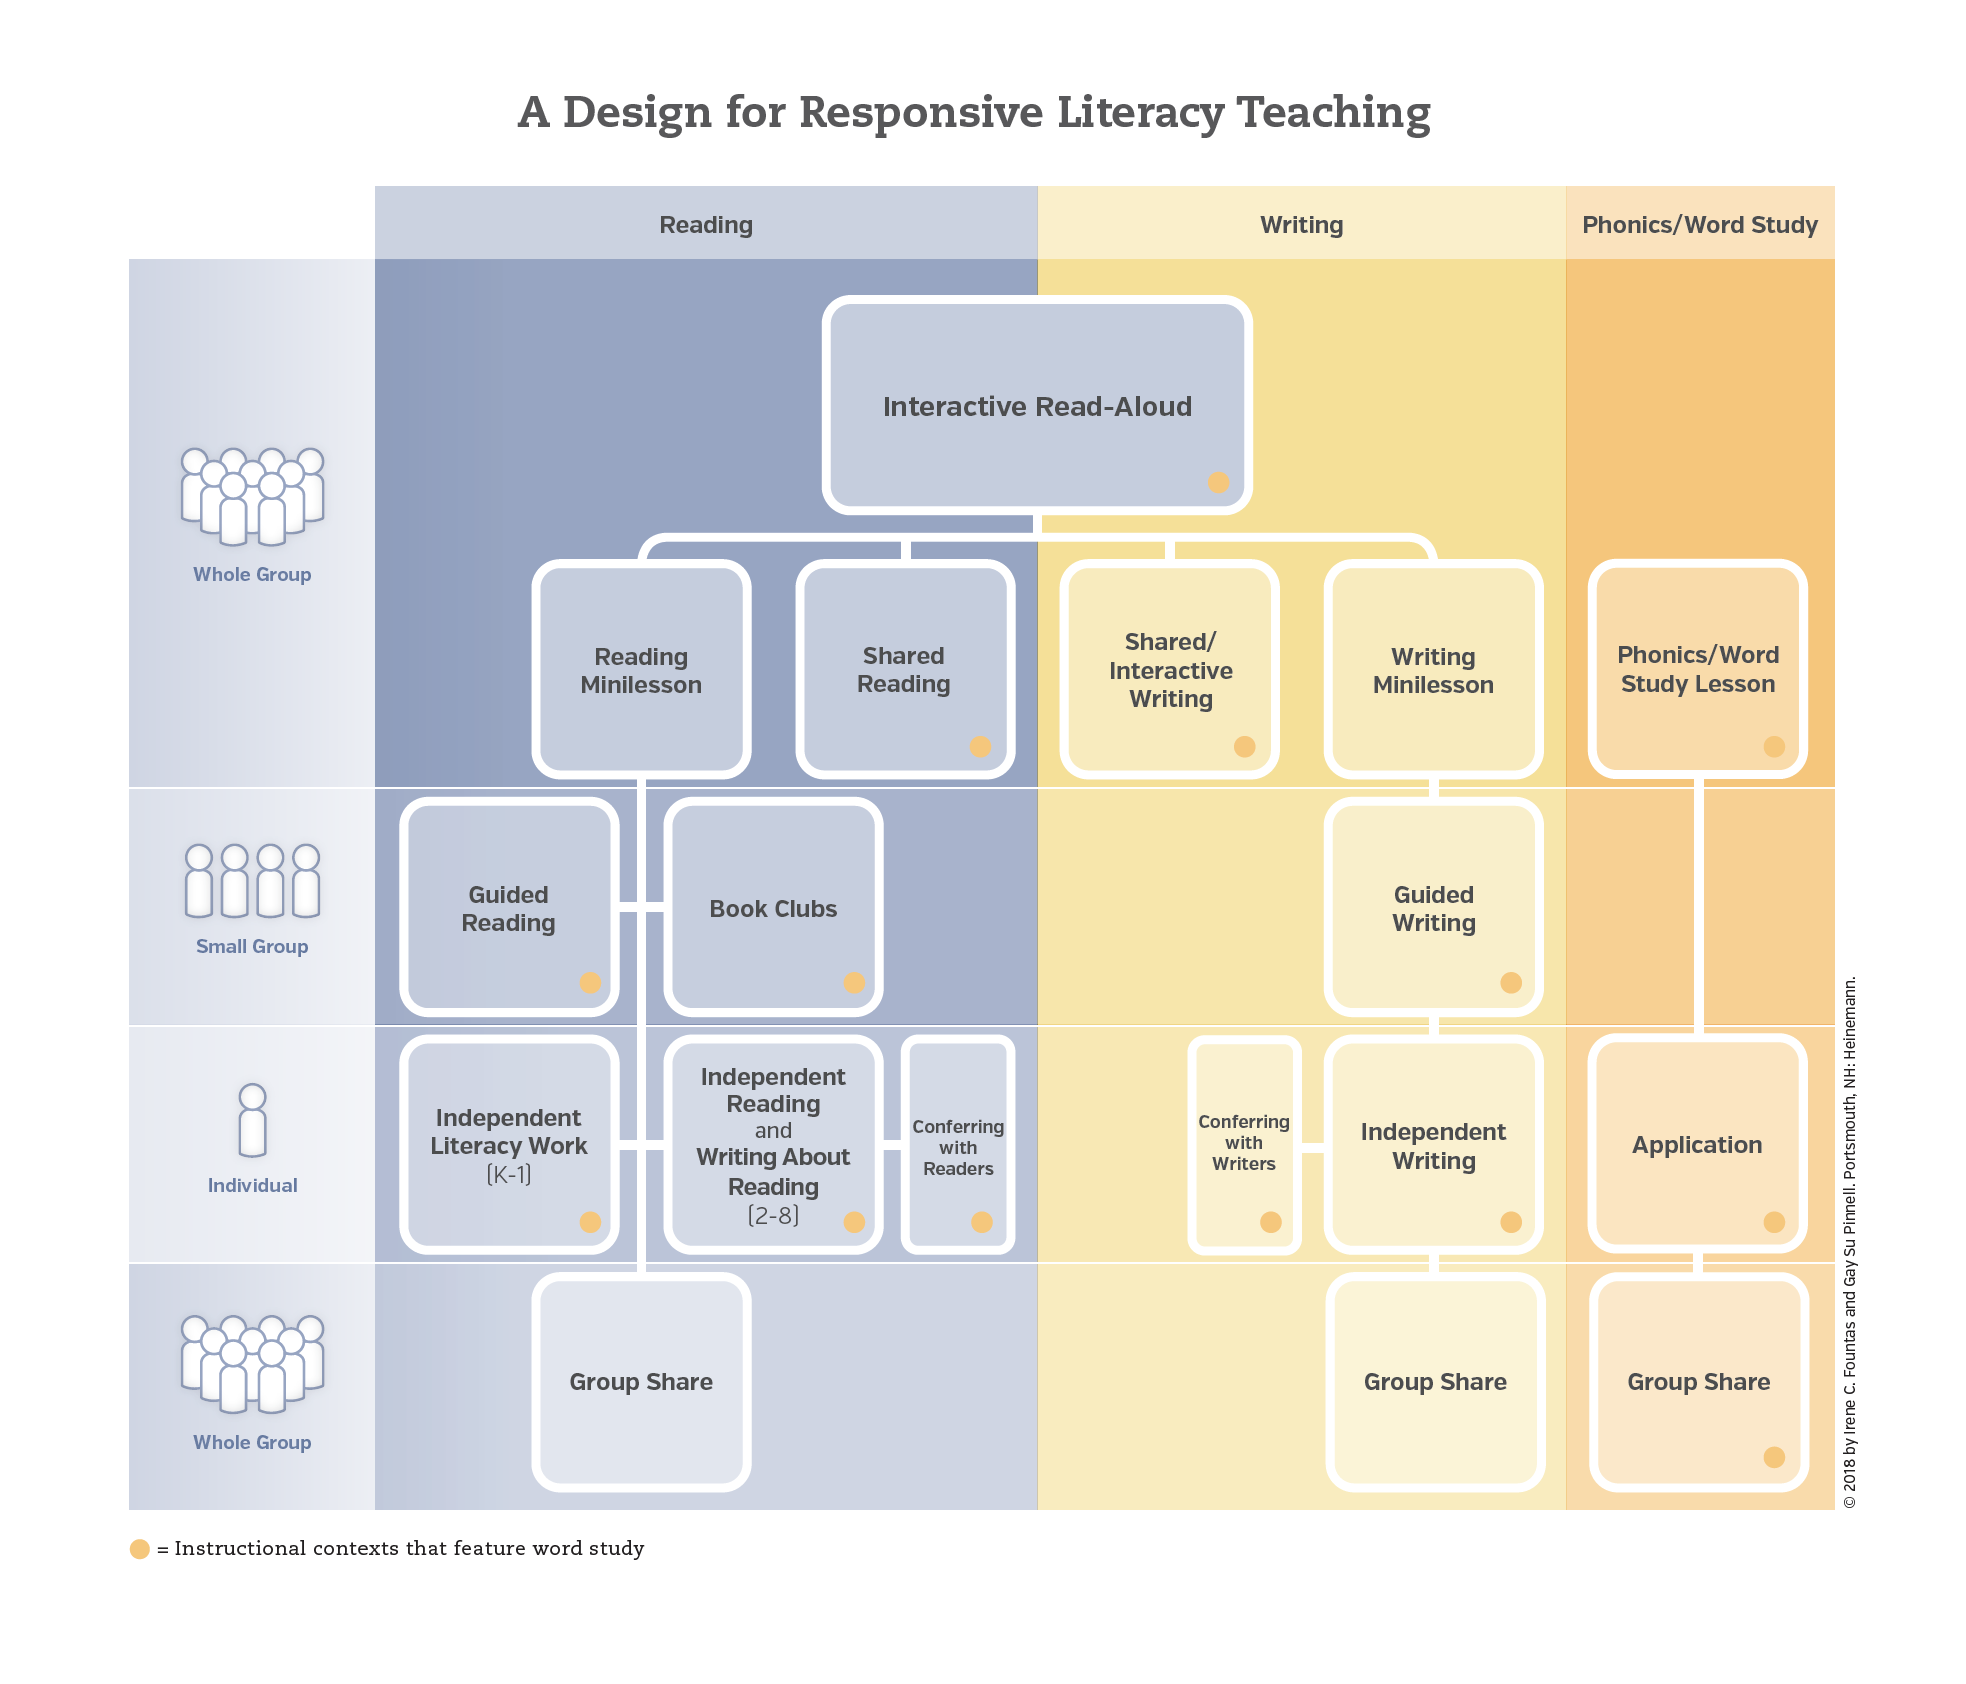 A Design for Responsive Literacy Teaching